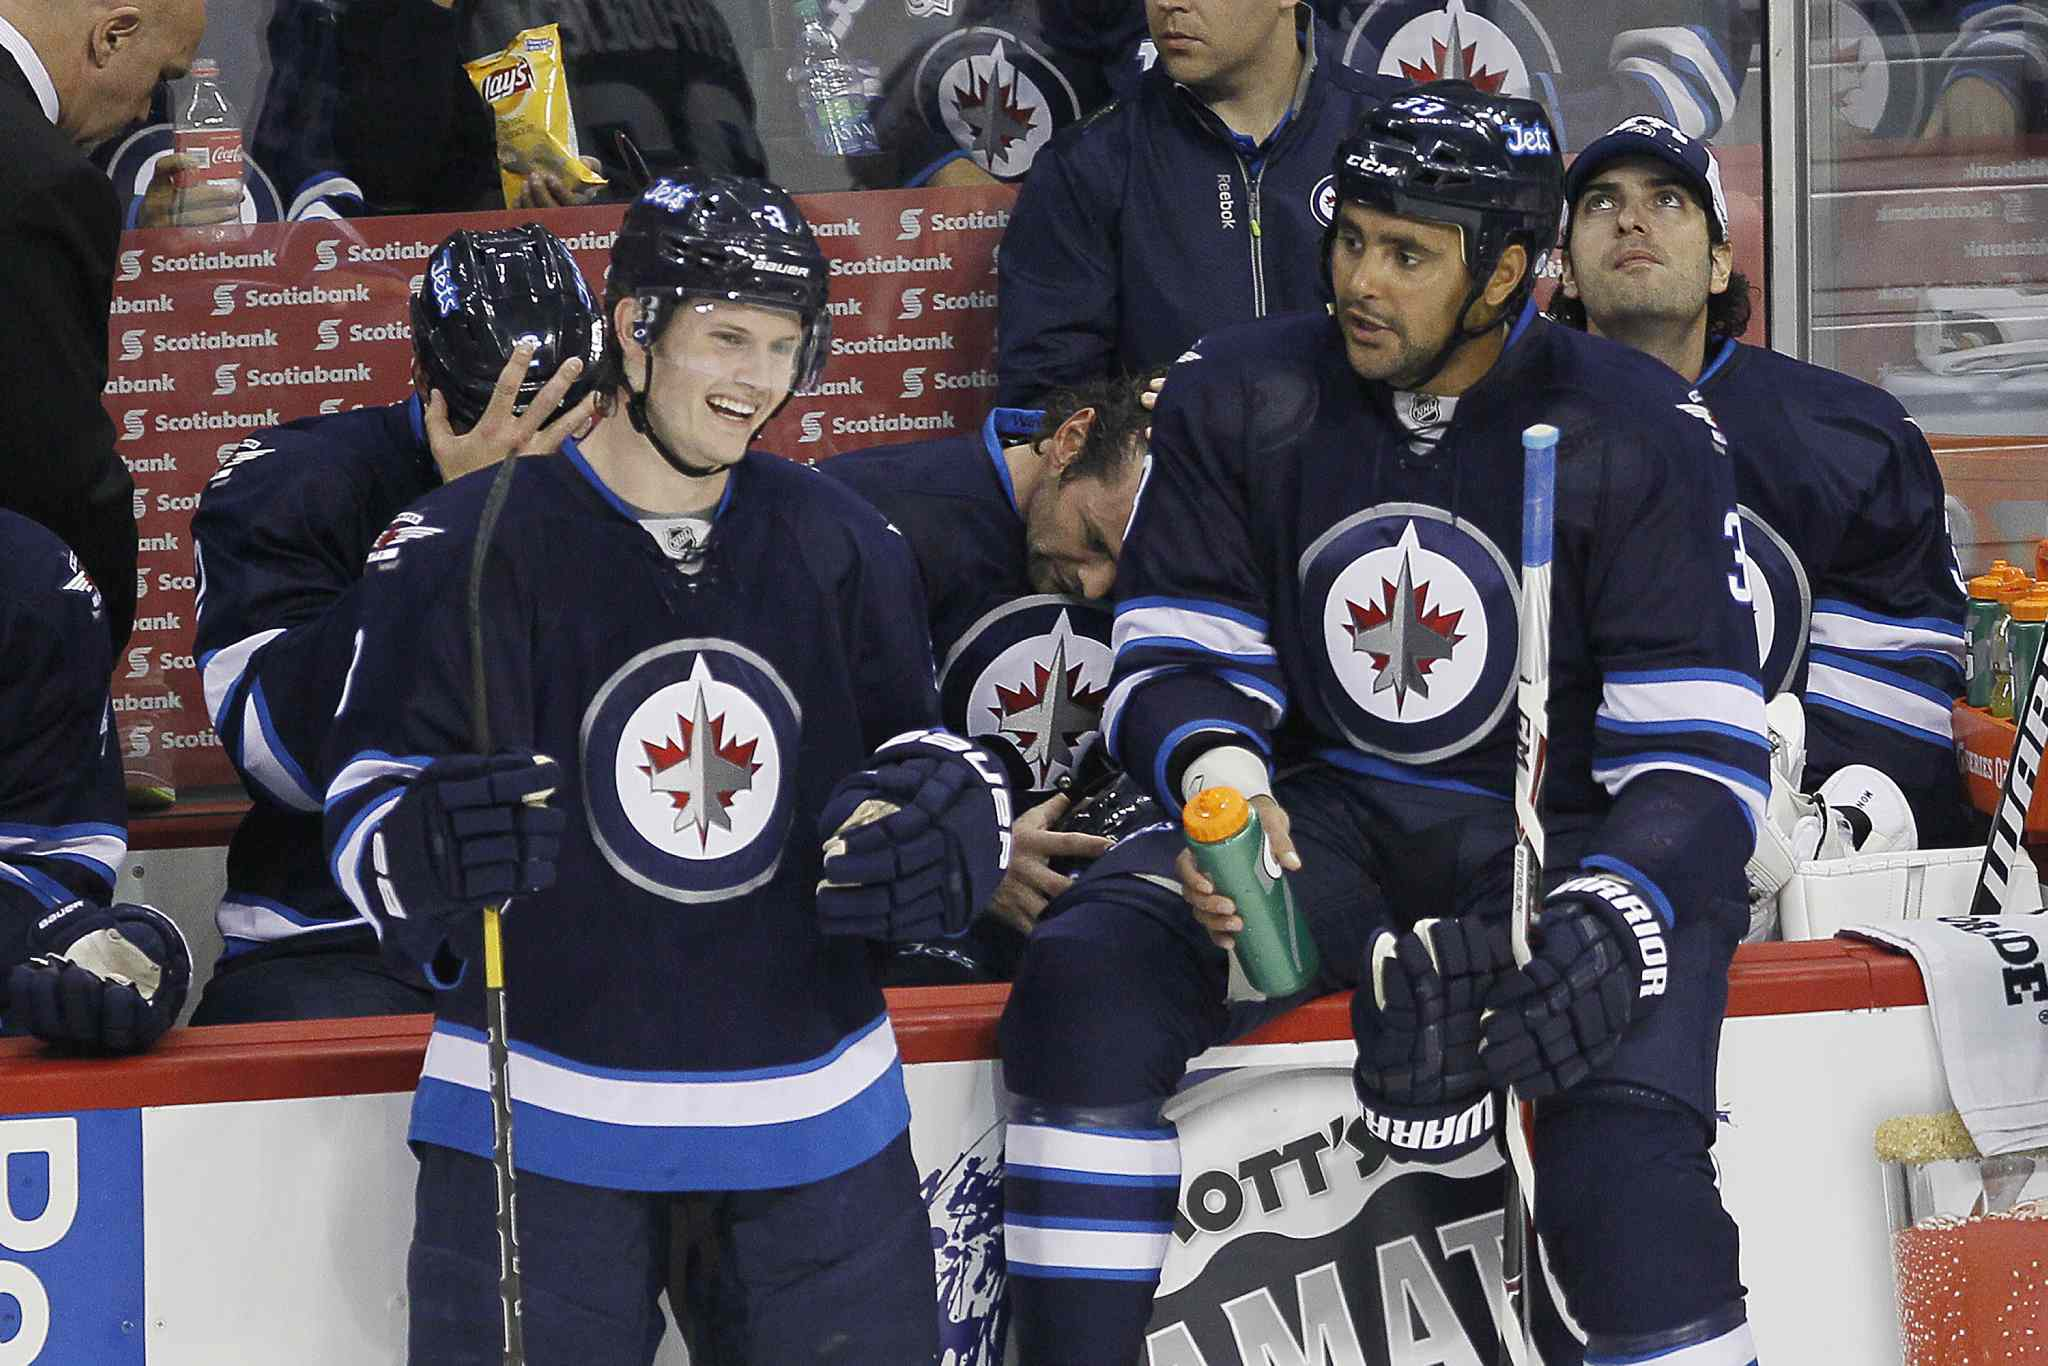 Winnipeg Jets' Jacob Trouba (left) and Dustin Byfuglien joke around during a commercial break.